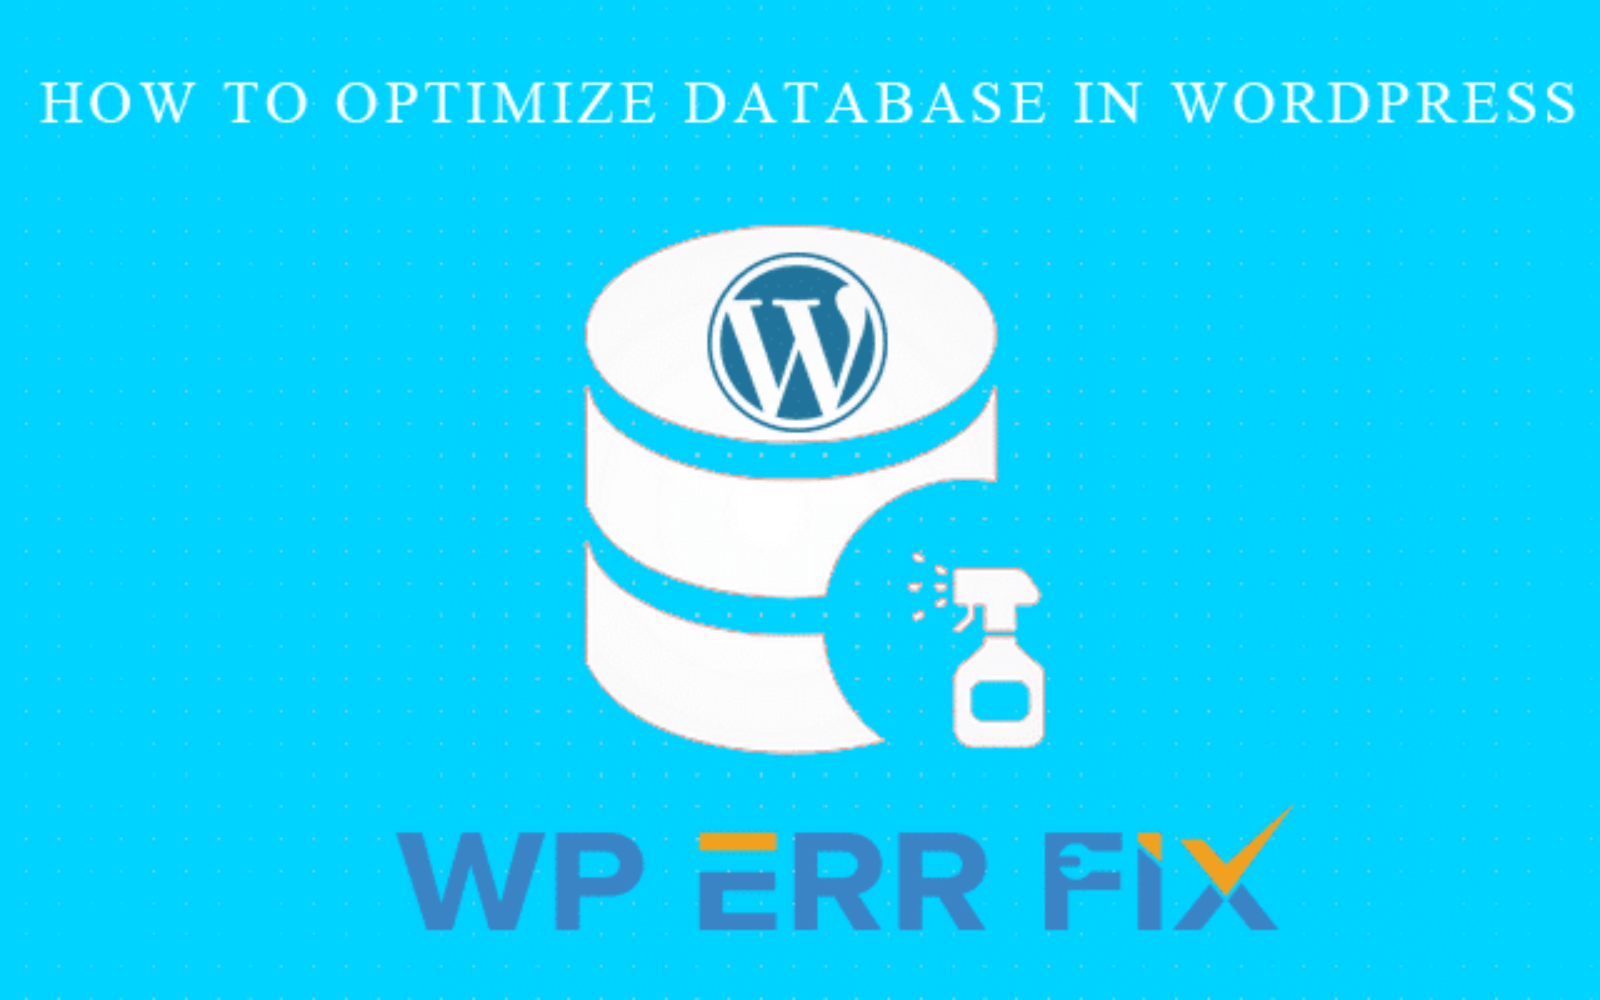 How to Optimize WordPress Database for Increase Page Speed